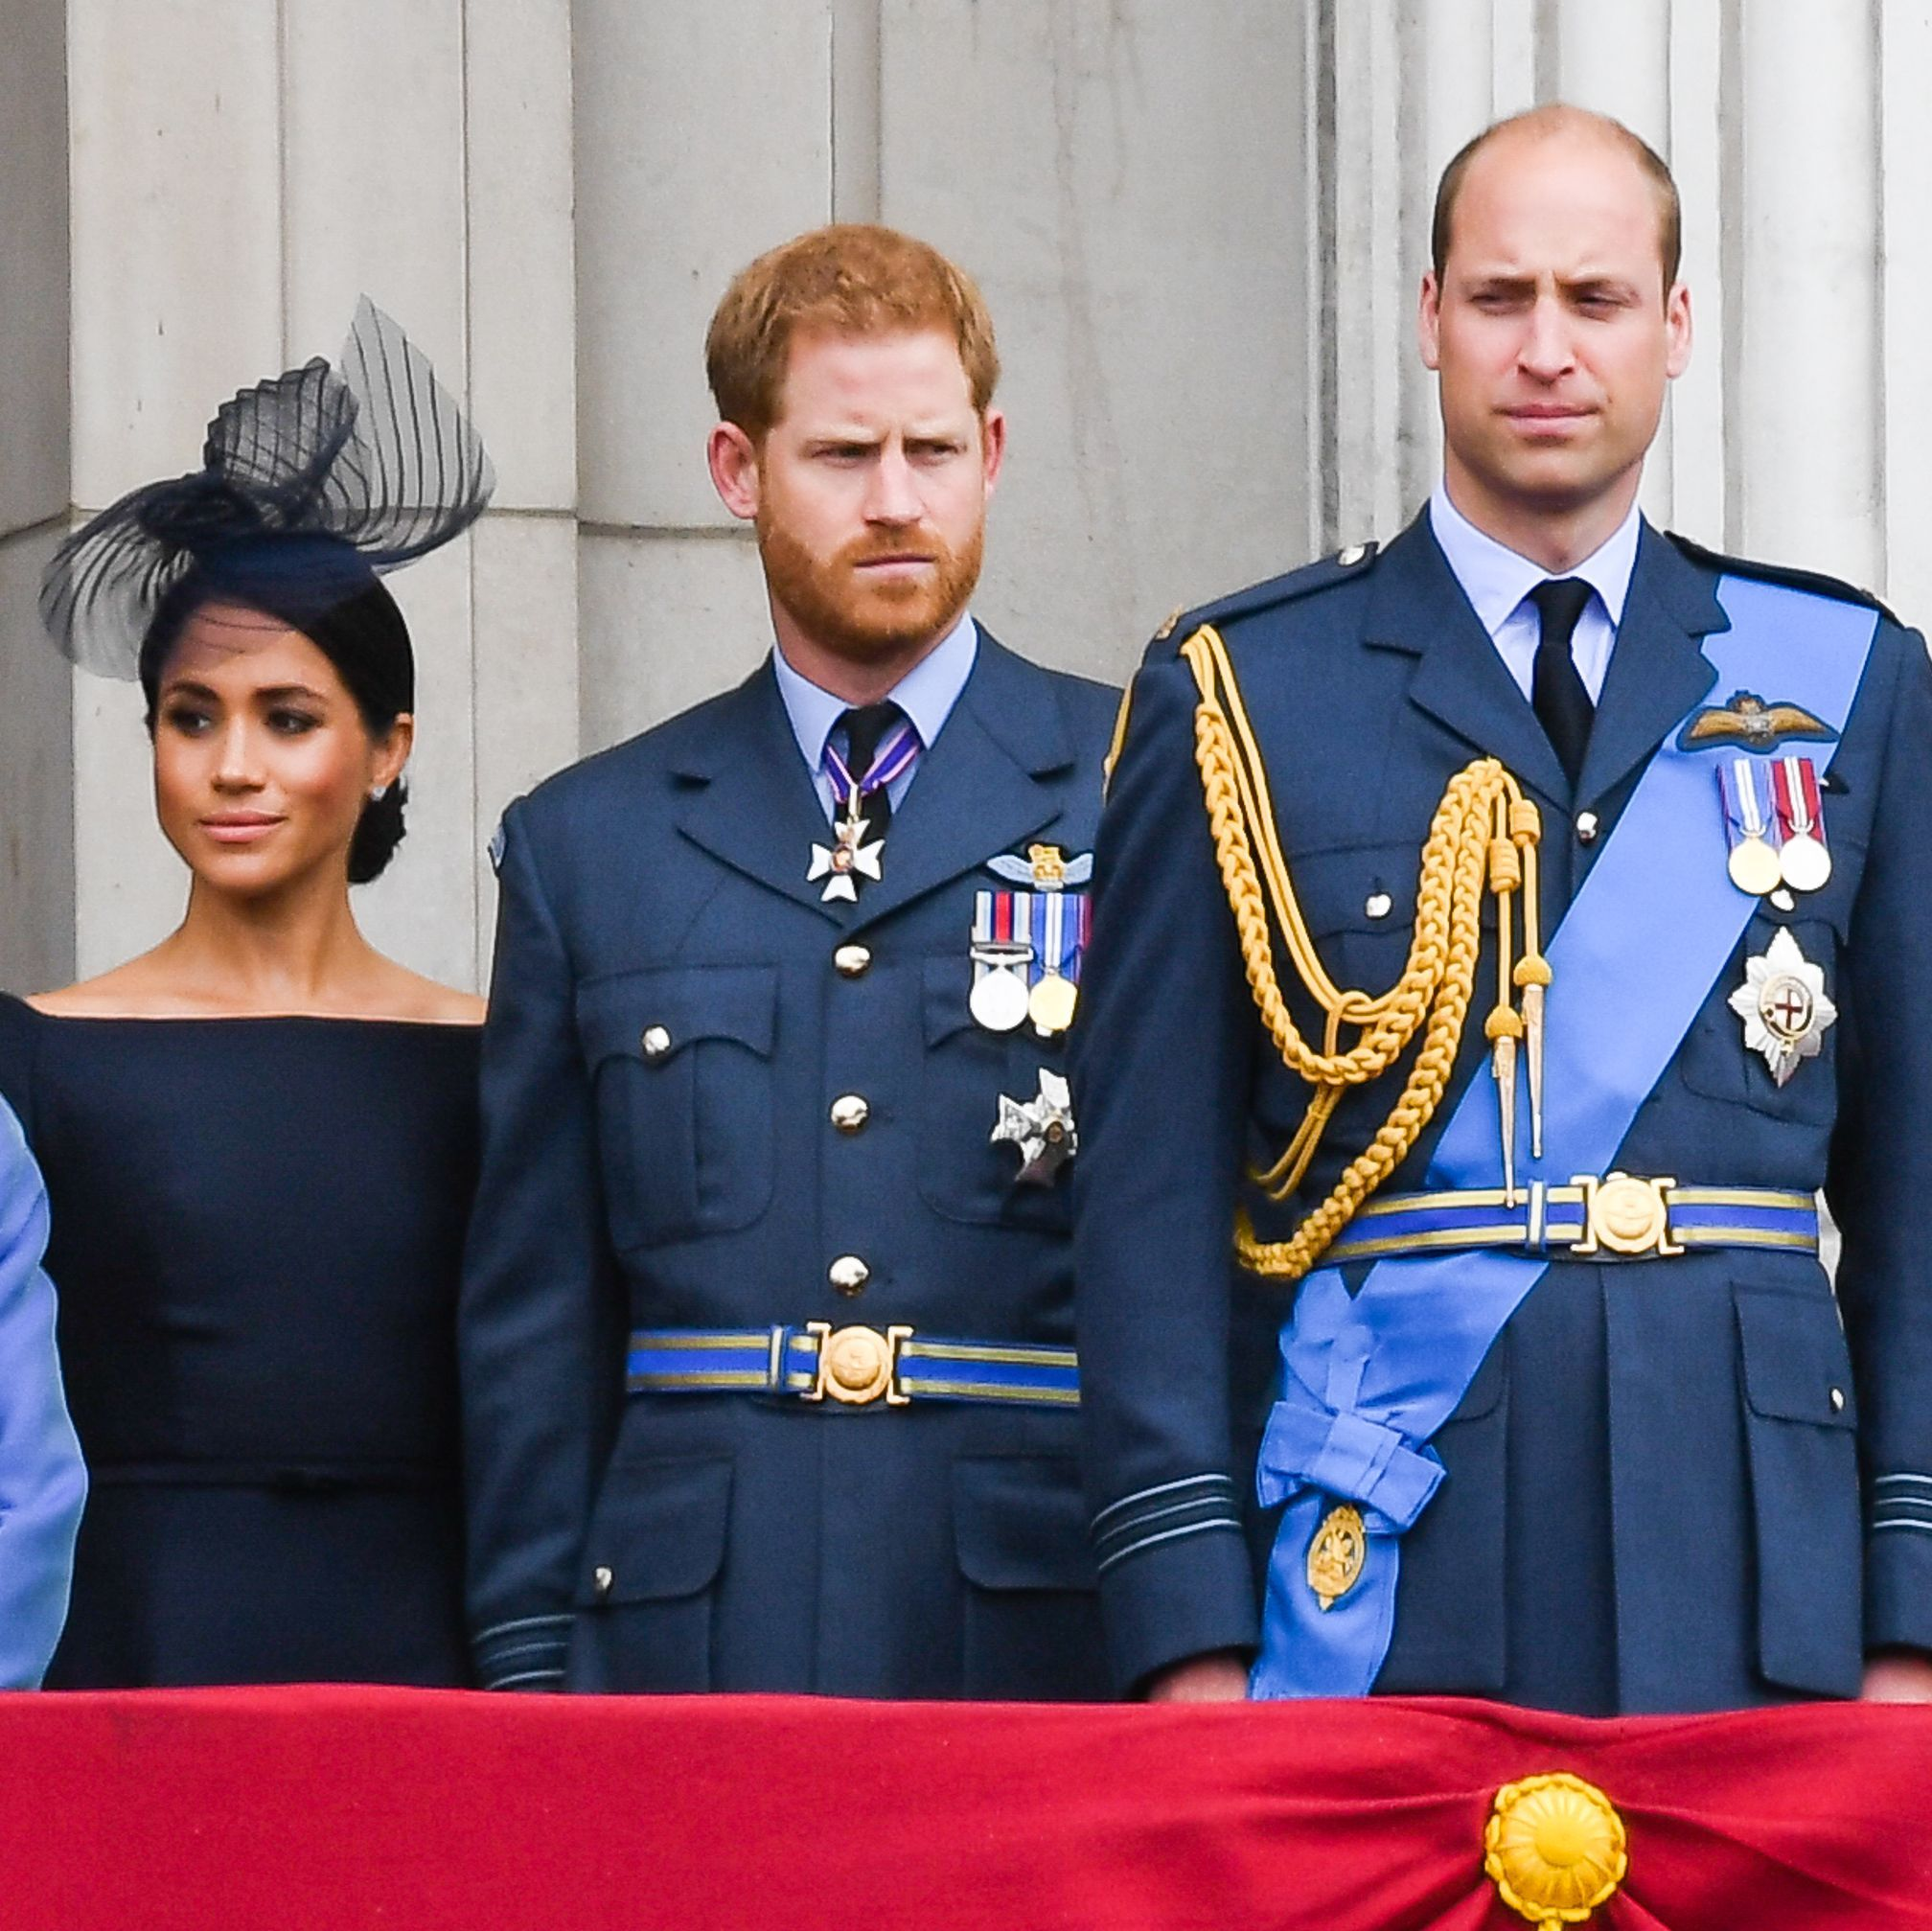 A Royal Reporter Claims The Whole Royal Family Is Embarrassed By Harry And Meghan Prince Harry And Meghan Royal Family Prince William